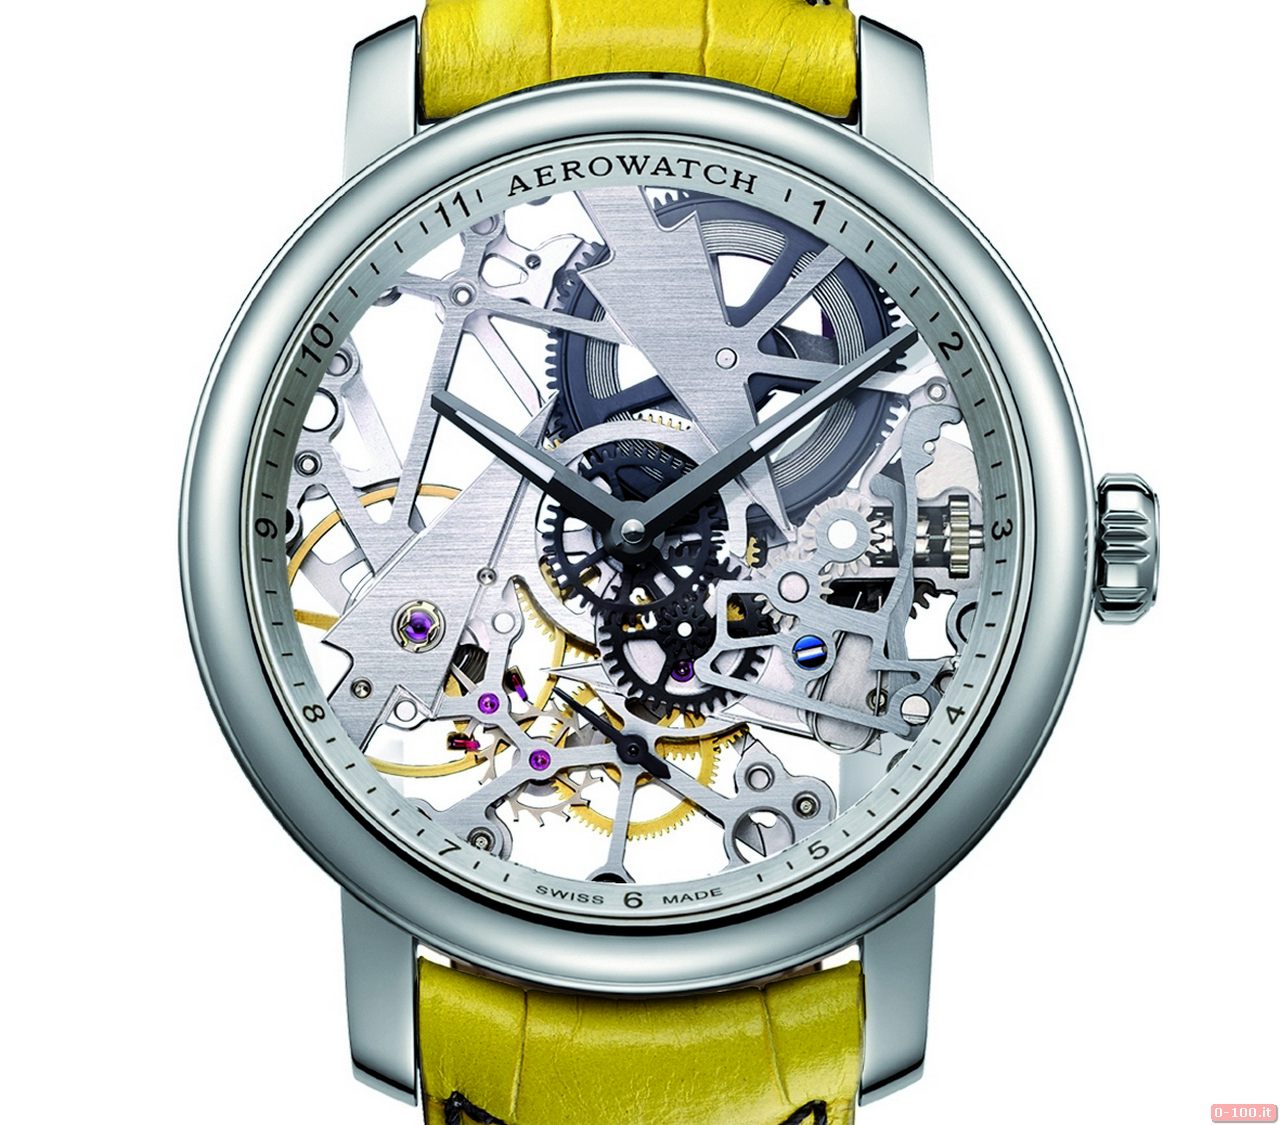 anteprima-baselworld-2014-aerowatch-renaissance-fir-tree_0-1001